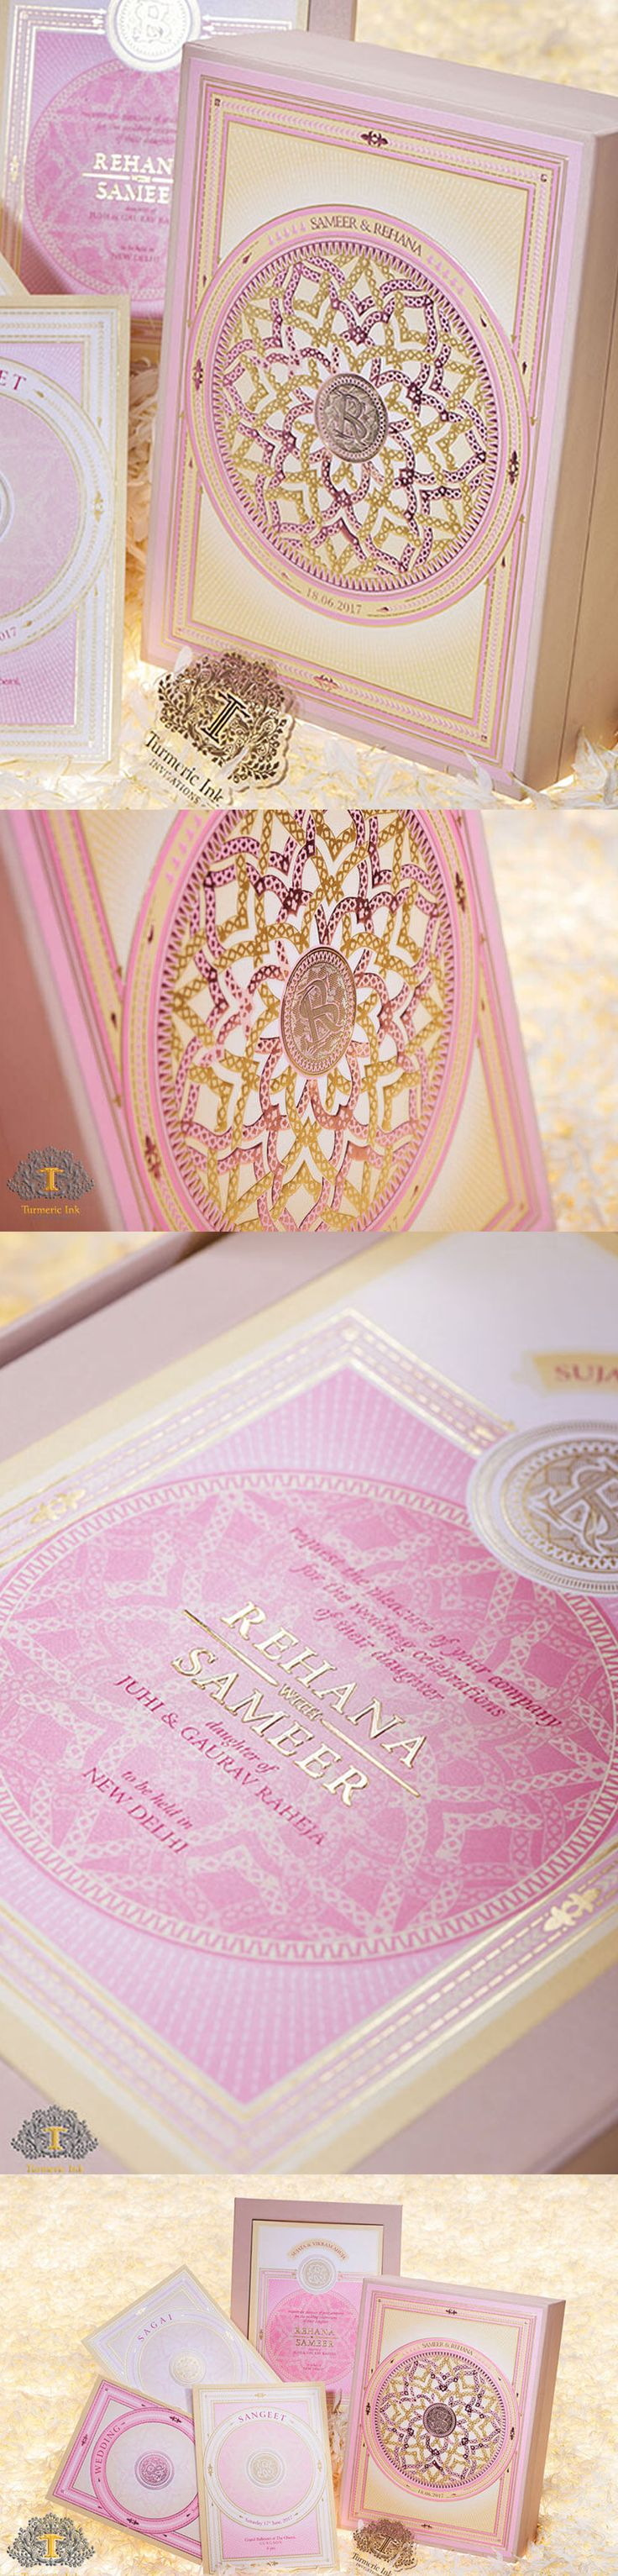 indian wedding hindu invitations%0A invite  invitations  Indian wedding invite  wedding card  bride  indian  bride  bride to be  groom  indian groom  groom to be  stationery  couture  invites